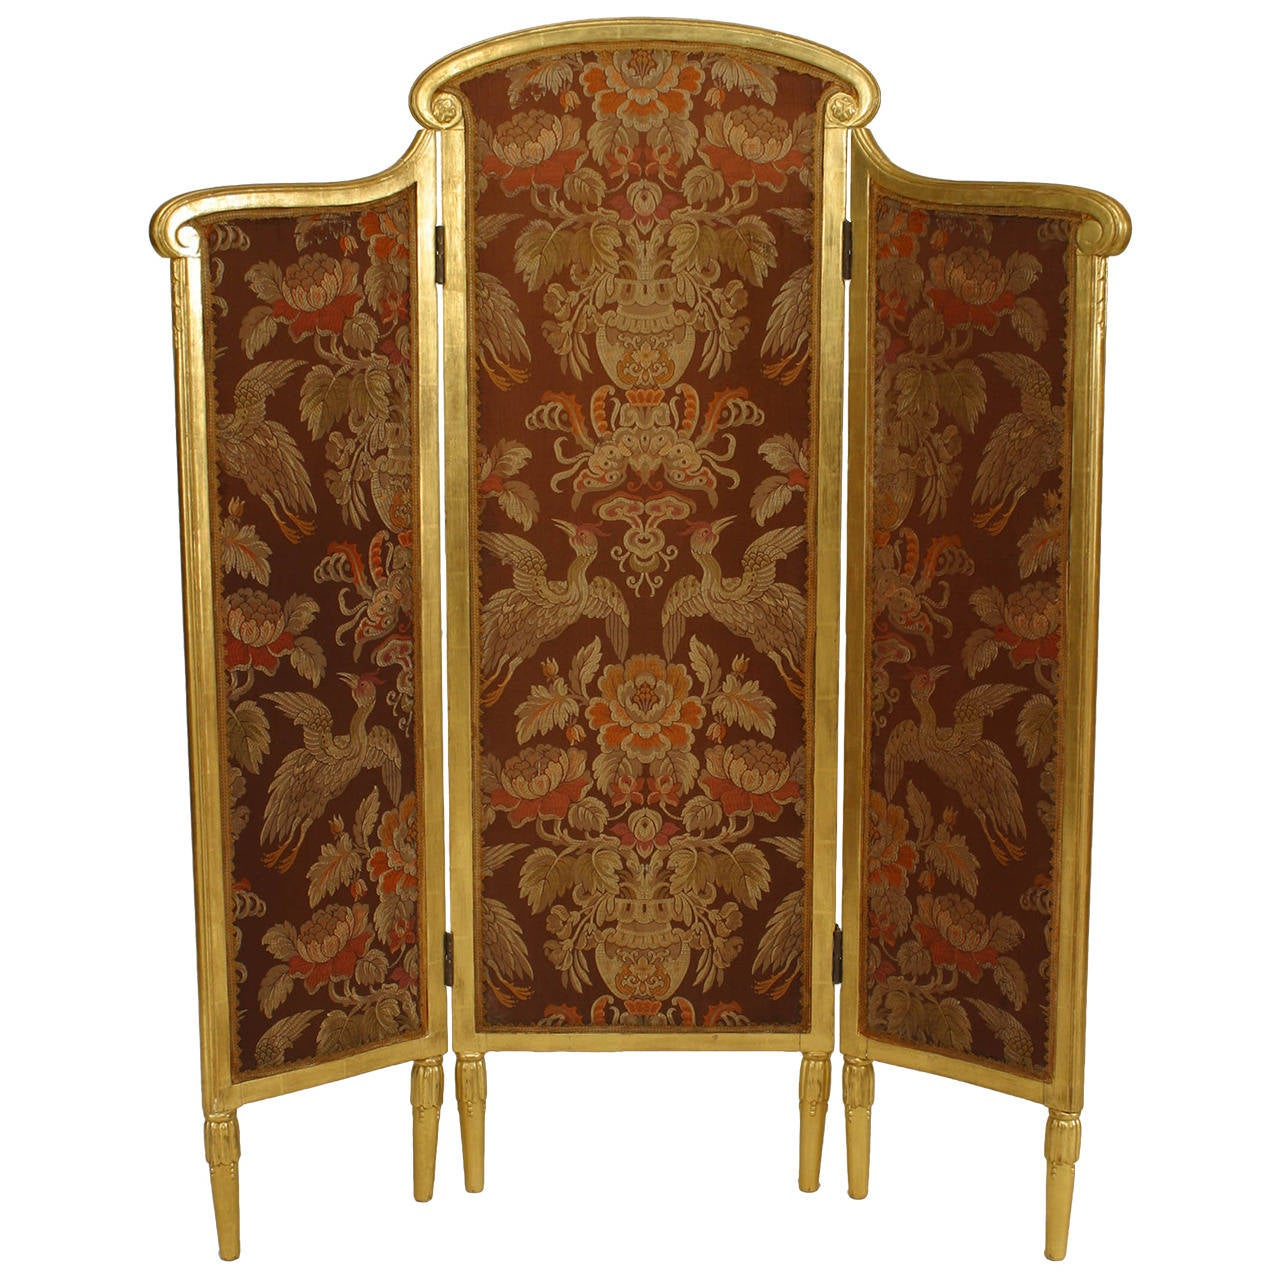 French Folding Screens : French art deco giltwood folding screen attributed to sue